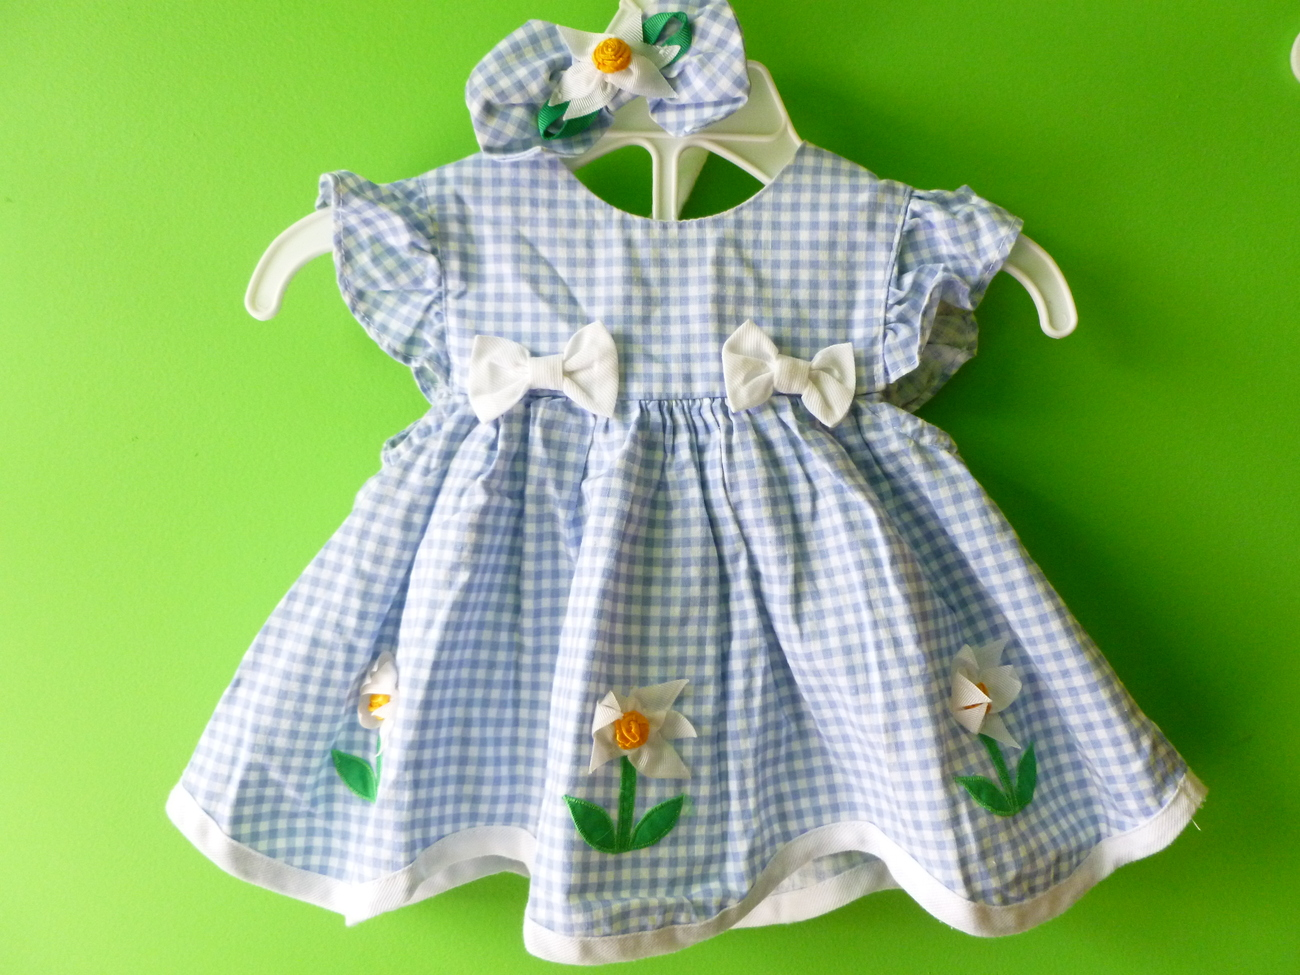 Macys Baby Girls Dress size 3-6 month comes with matching bottoms and hair bow